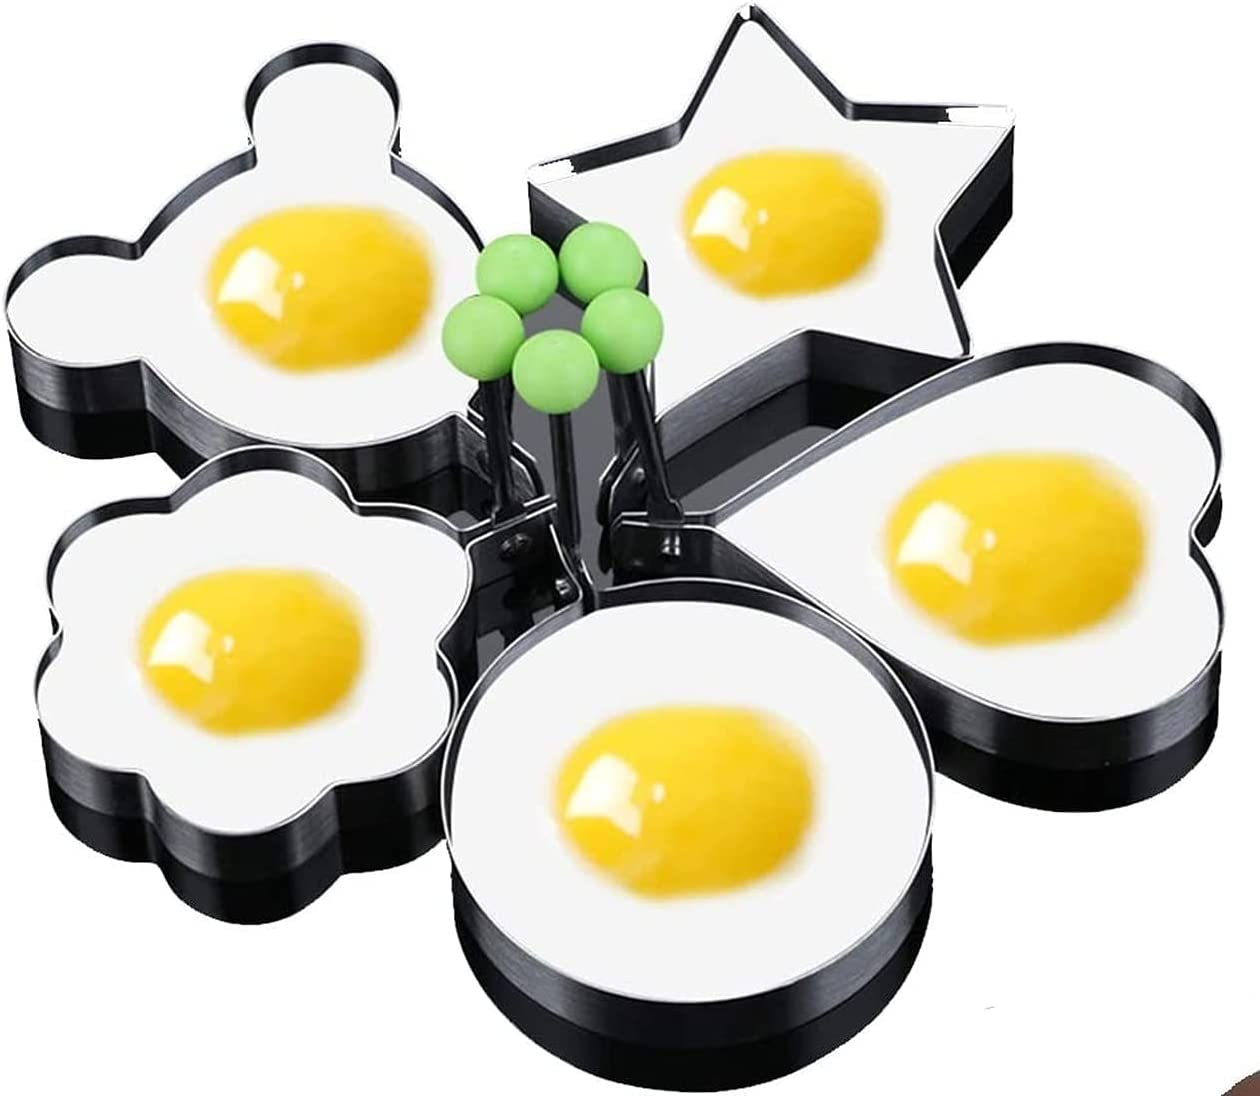 MENGMENG Sale special price Egg Rings Pancake Albuquerque Mall Fried Non-Stick Mold Shaper